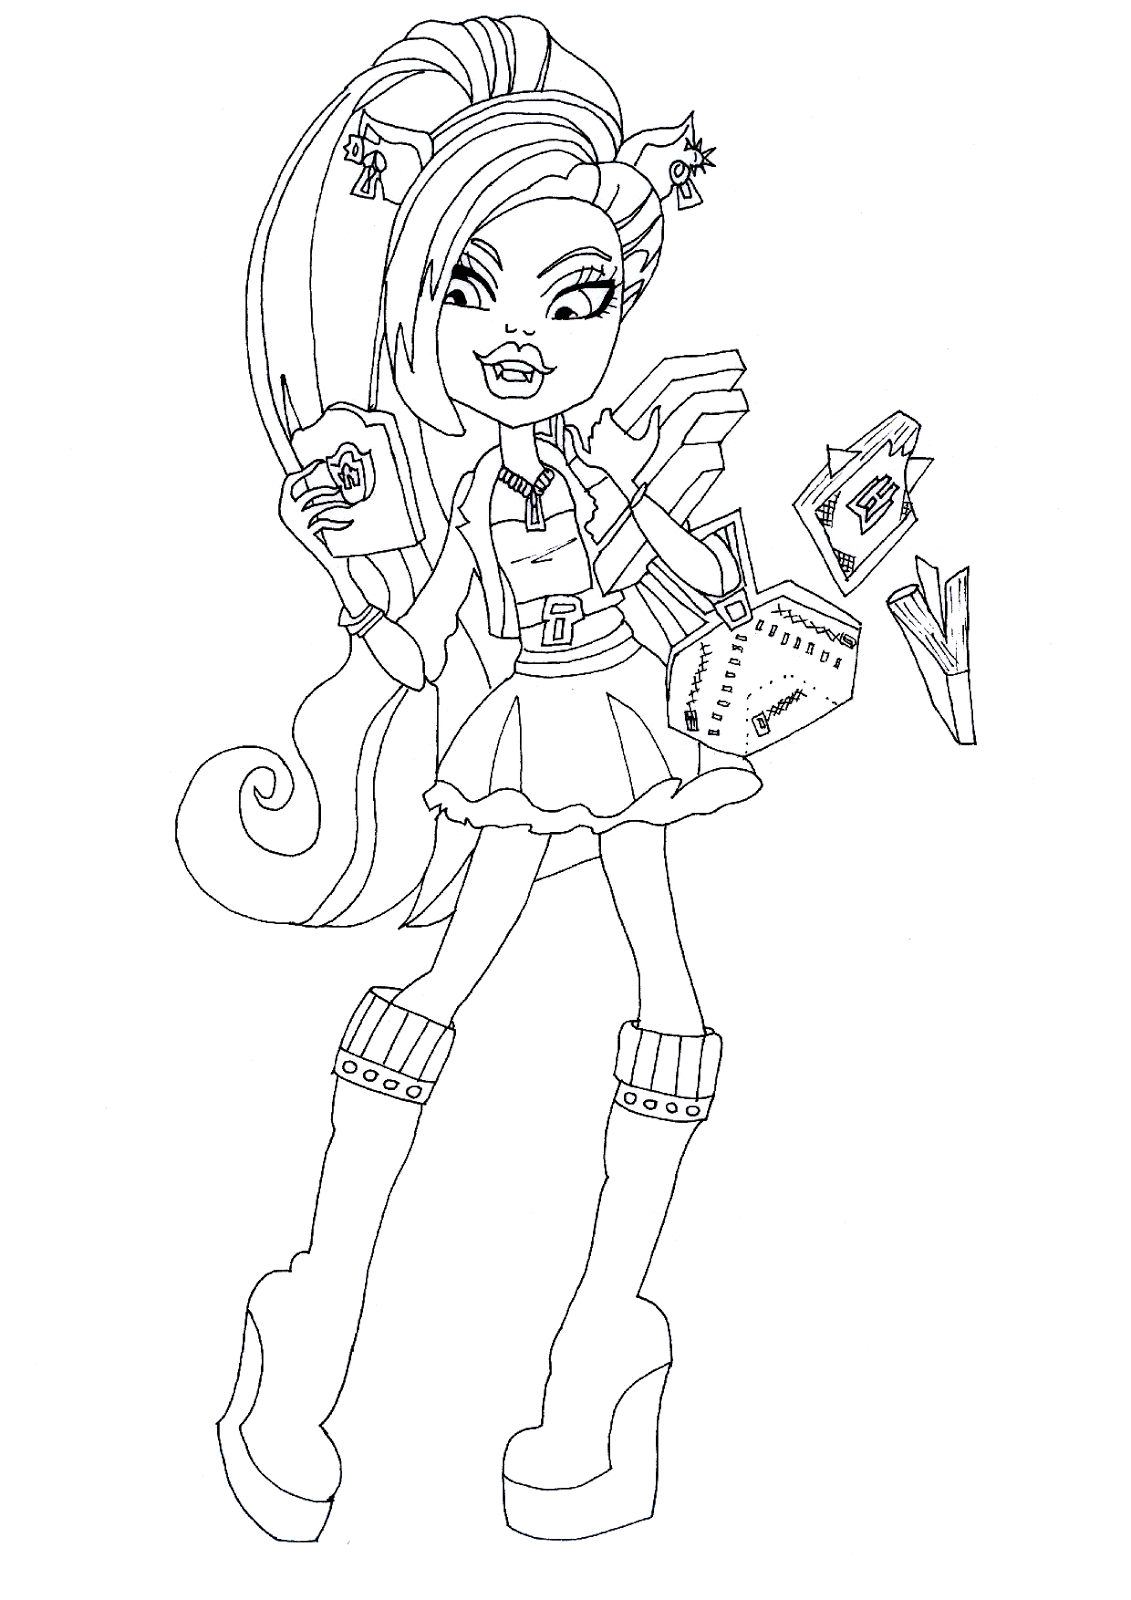 Free Printable Monster High Coloring Pages October 2013 High Coloring Pages Printables